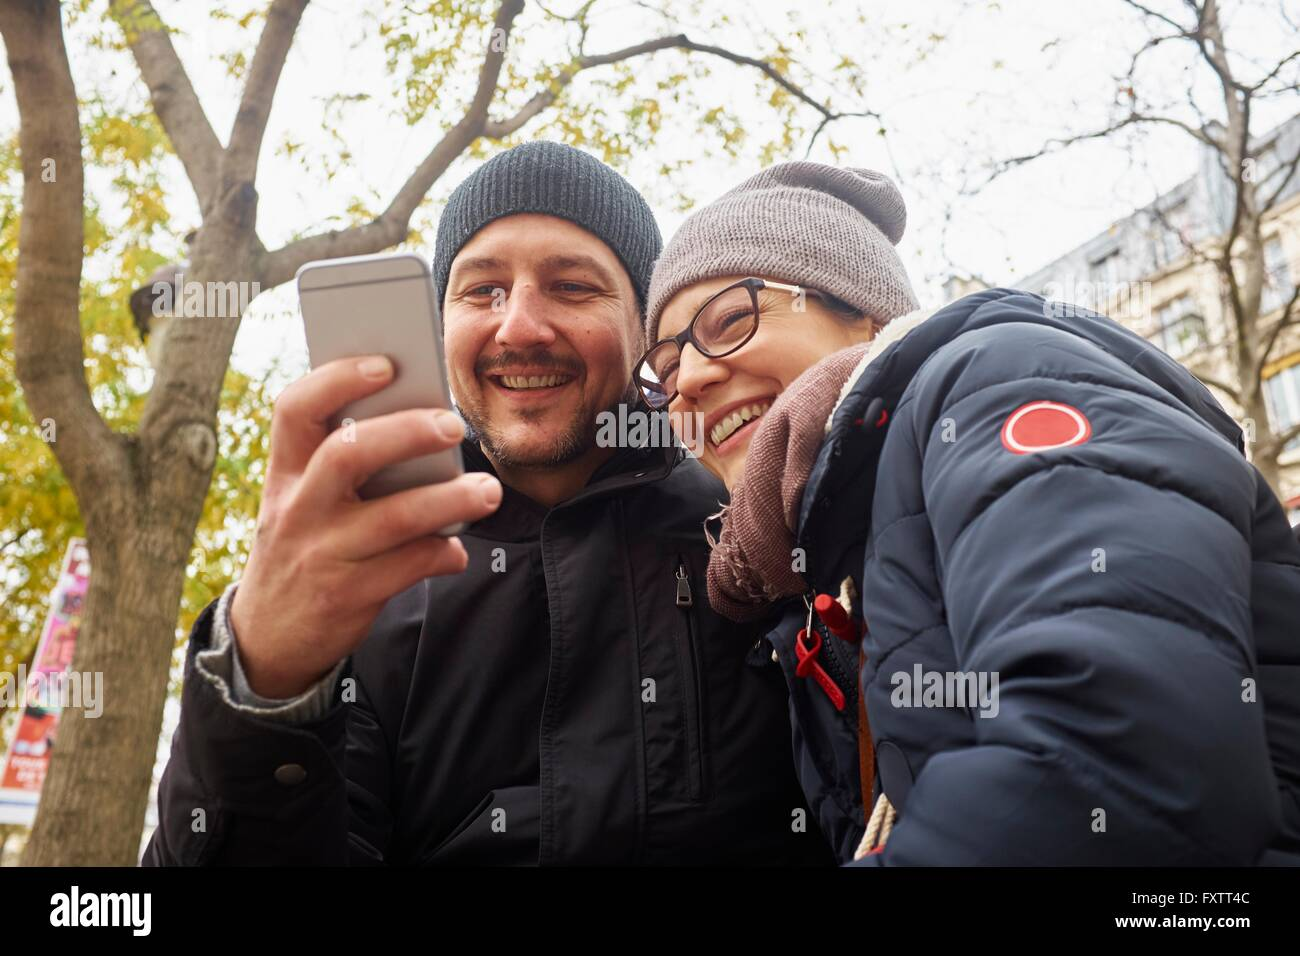 Couple wearing knit hats in park reading smartphone texts - Stock Image